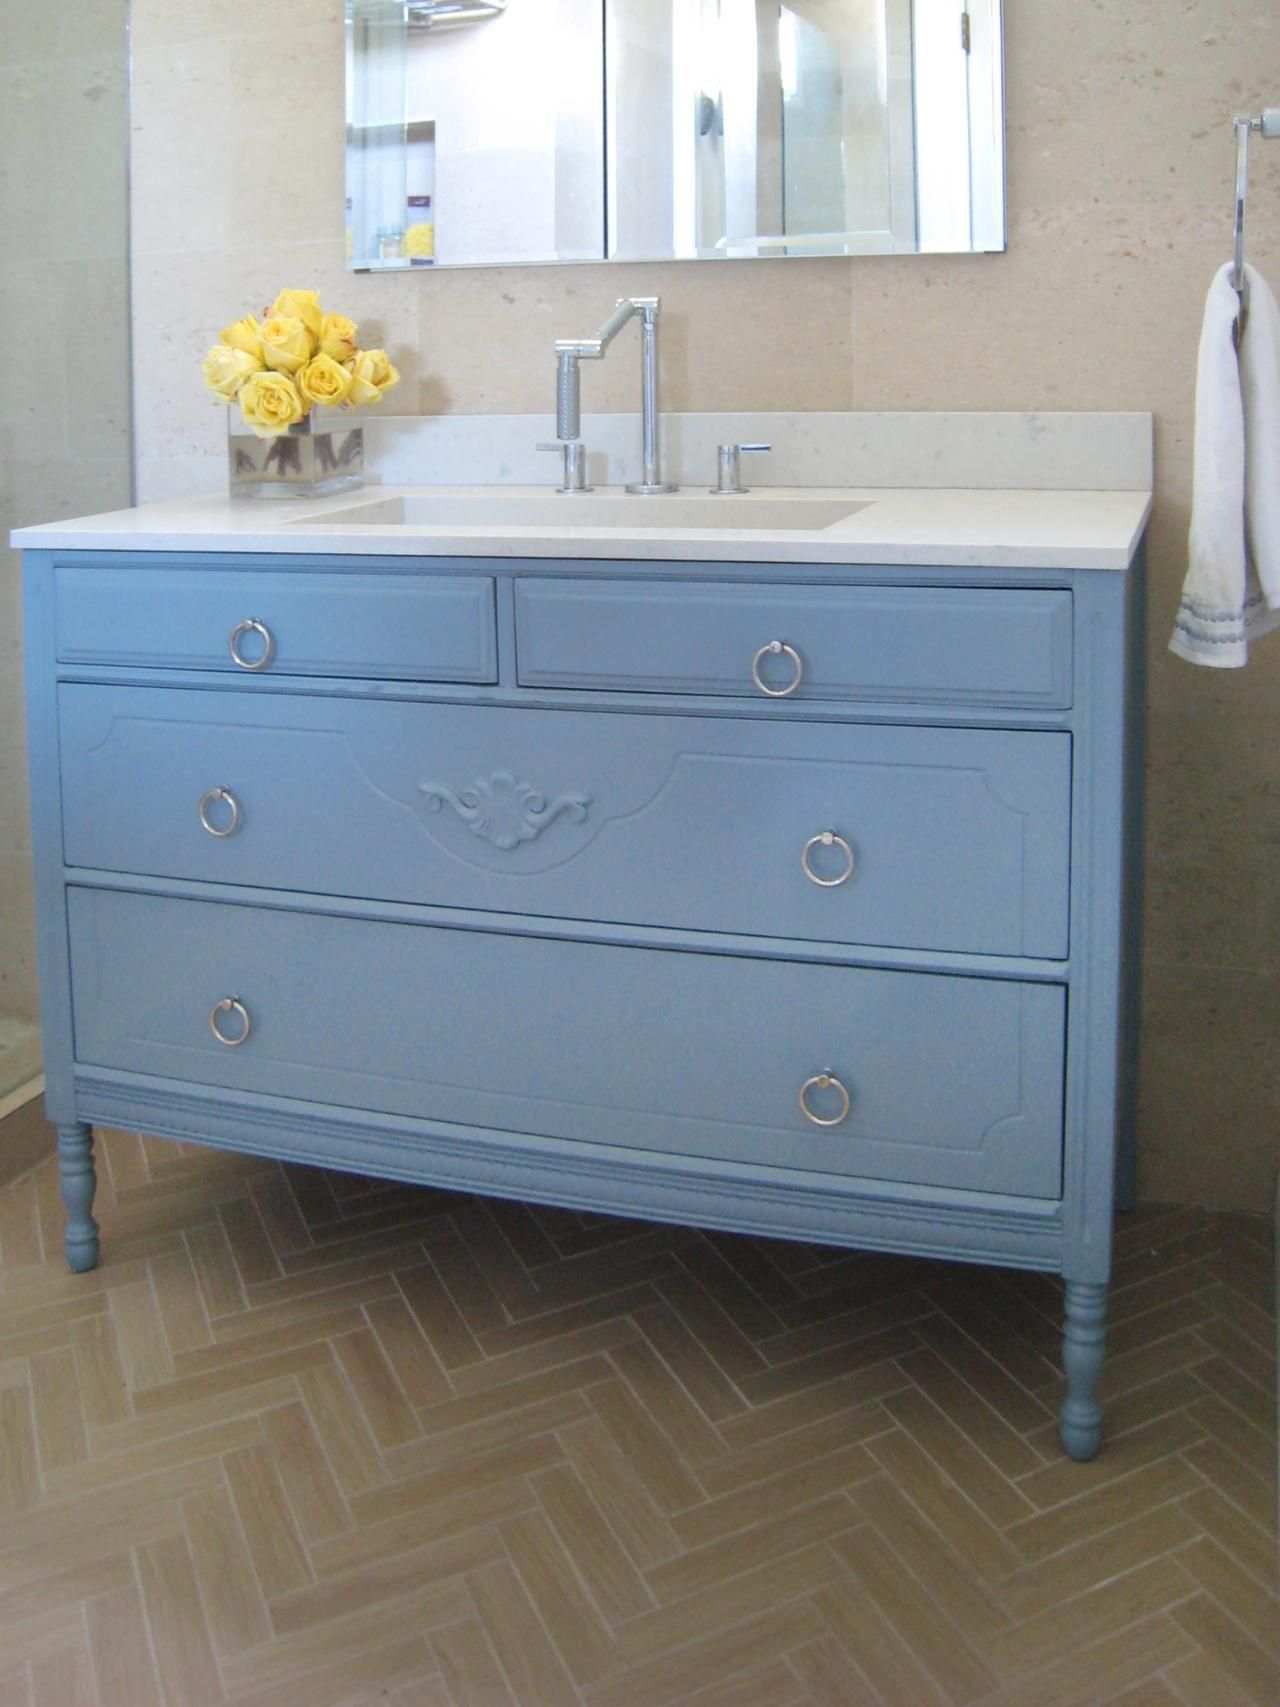 20 Upcycled And One Of A Kind Bathroom Vanities Diy Mobel Ideen